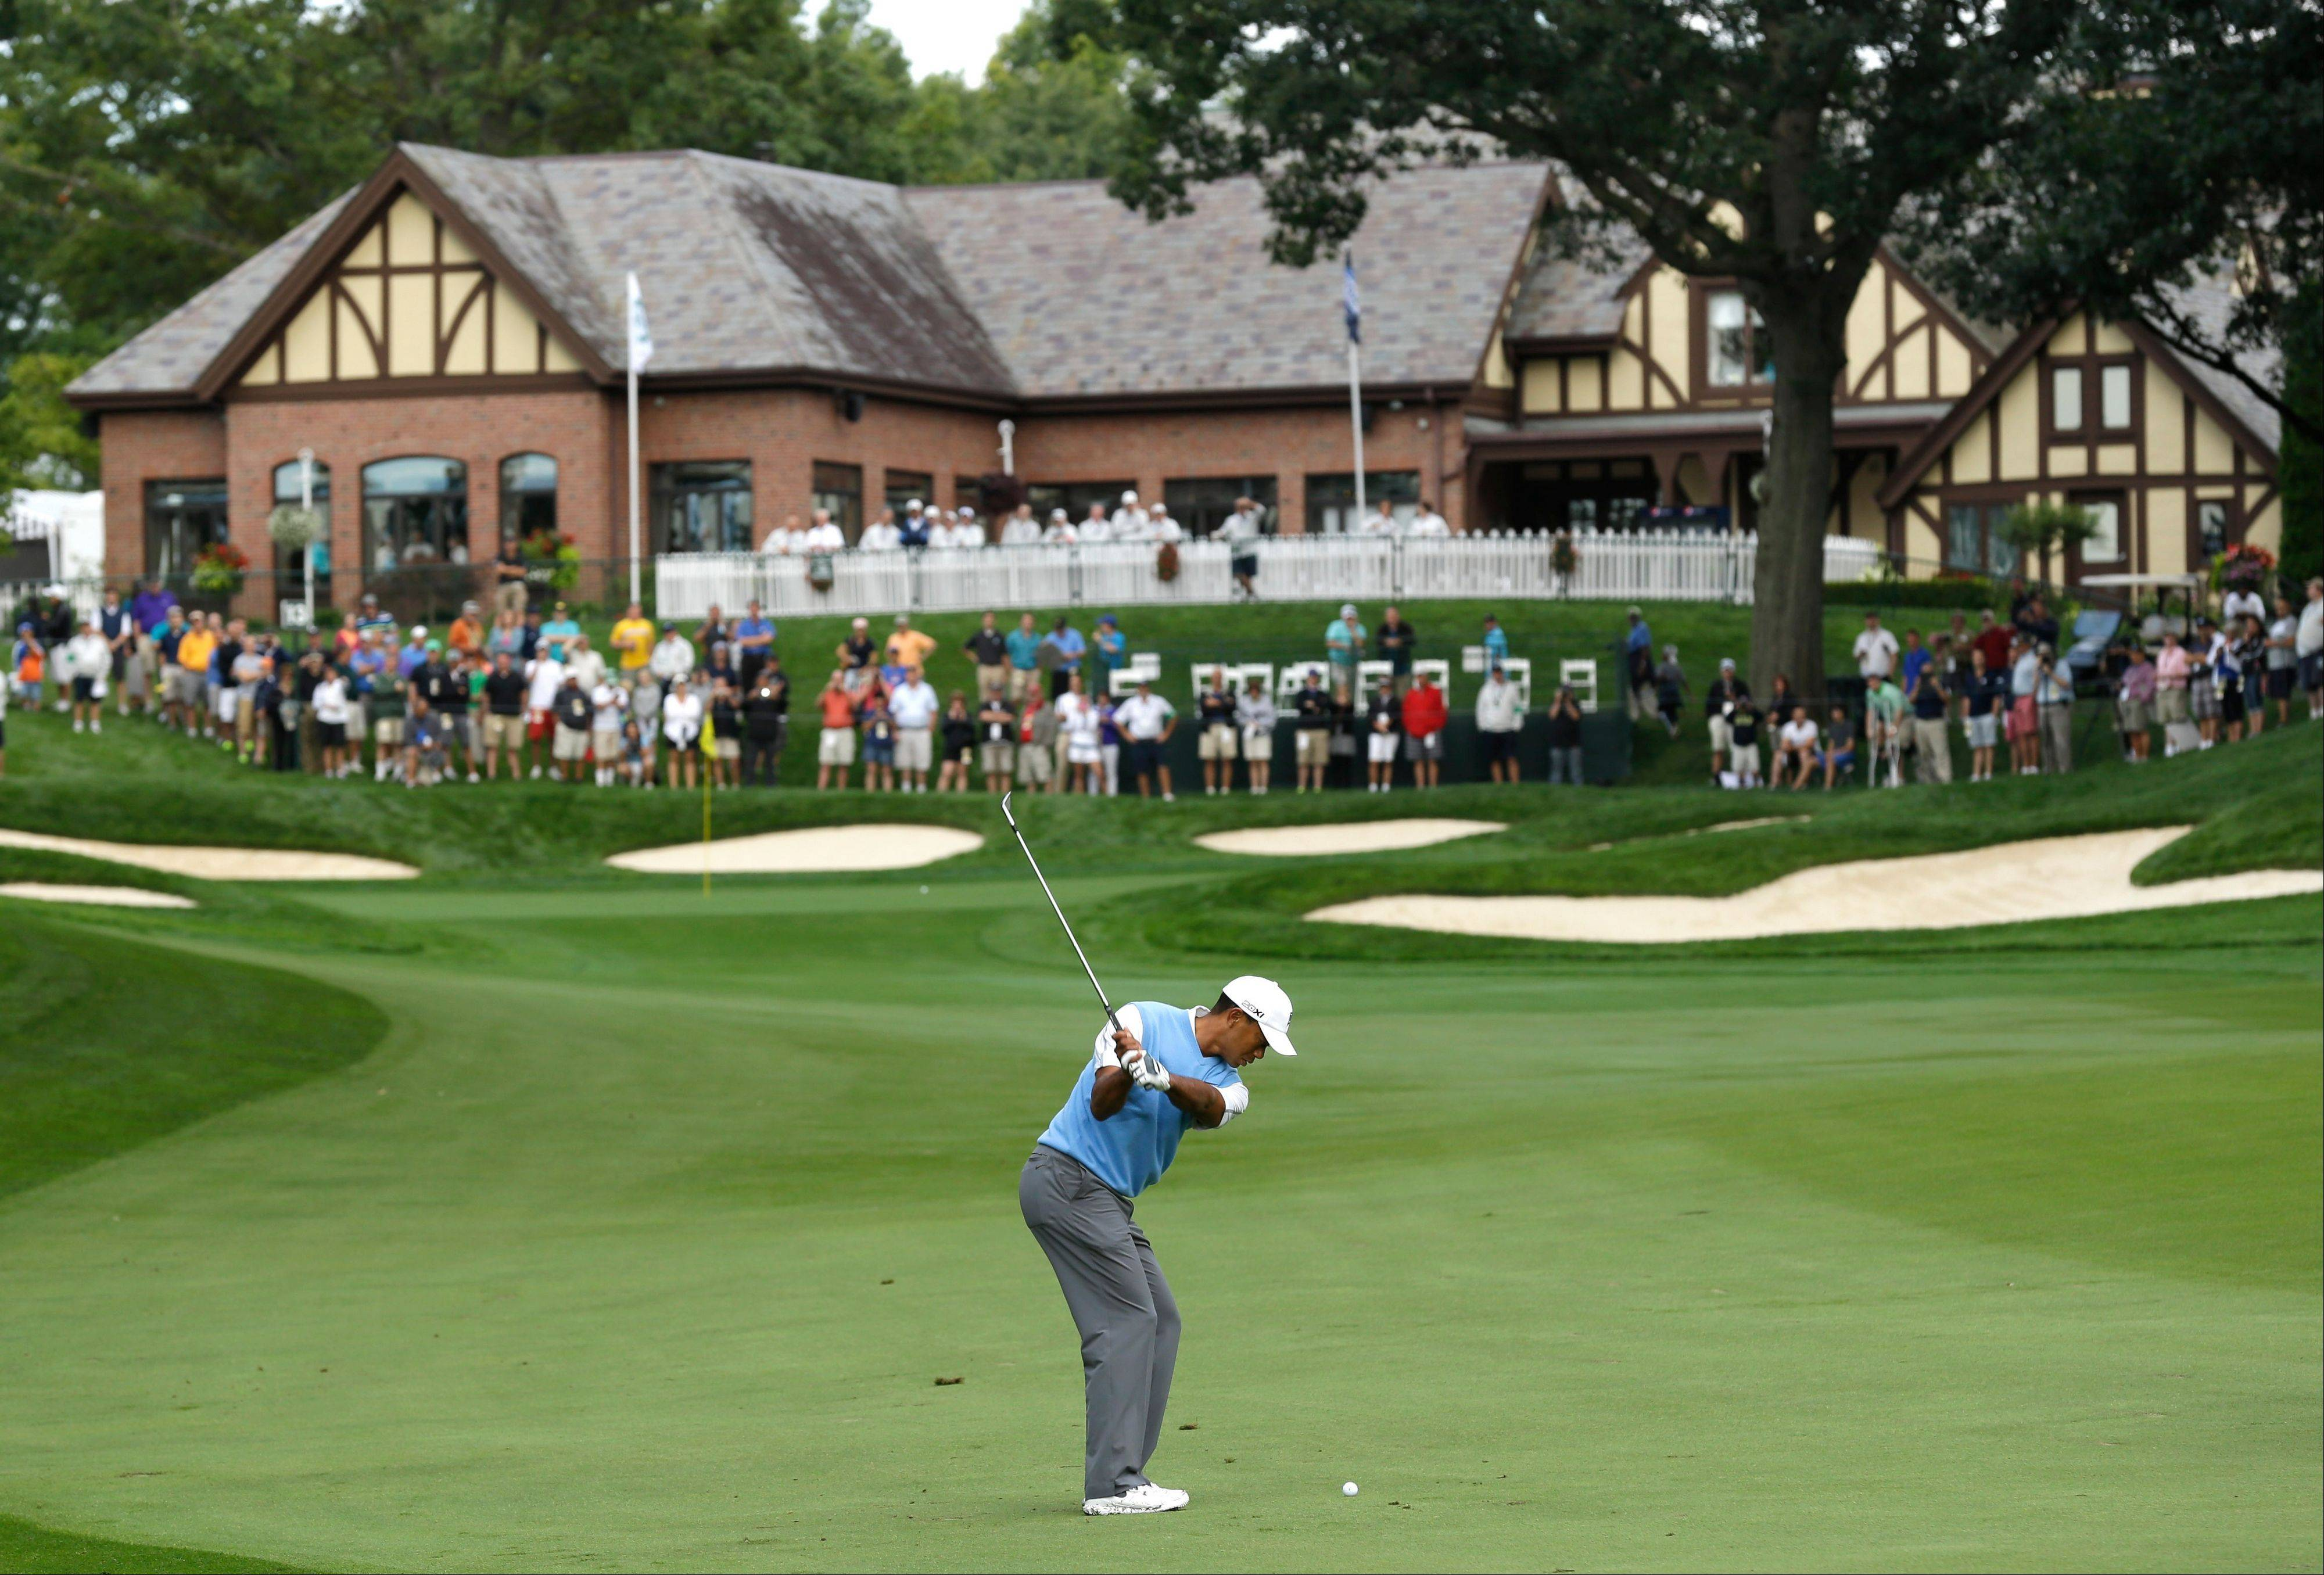 Tiger Woods hits to the 18th green during a practice round for the PGA Championship golf tournament at Oak Hill Country Club, Tuesday. Illini golf coach Mike Small again earned a spot in the field, which opens play on Thursday.